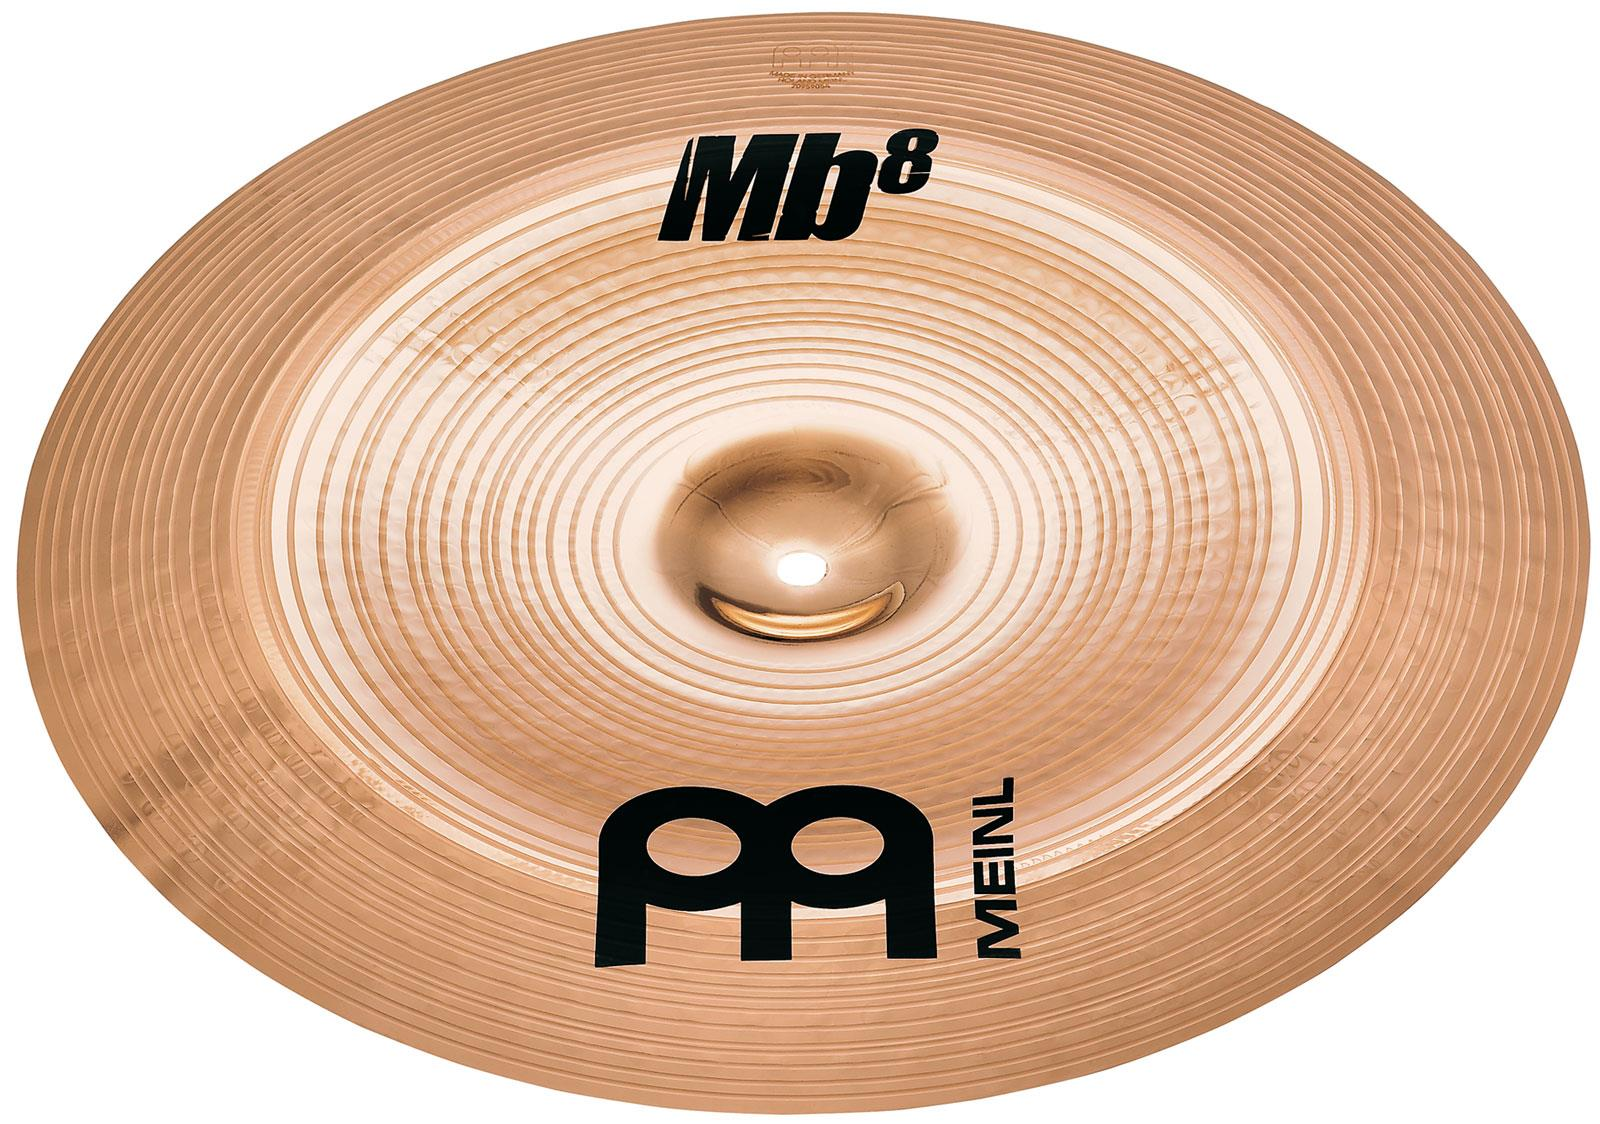 meinl mb8 effect cymbal set keymusic. Black Bedroom Furniture Sets. Home Design Ideas